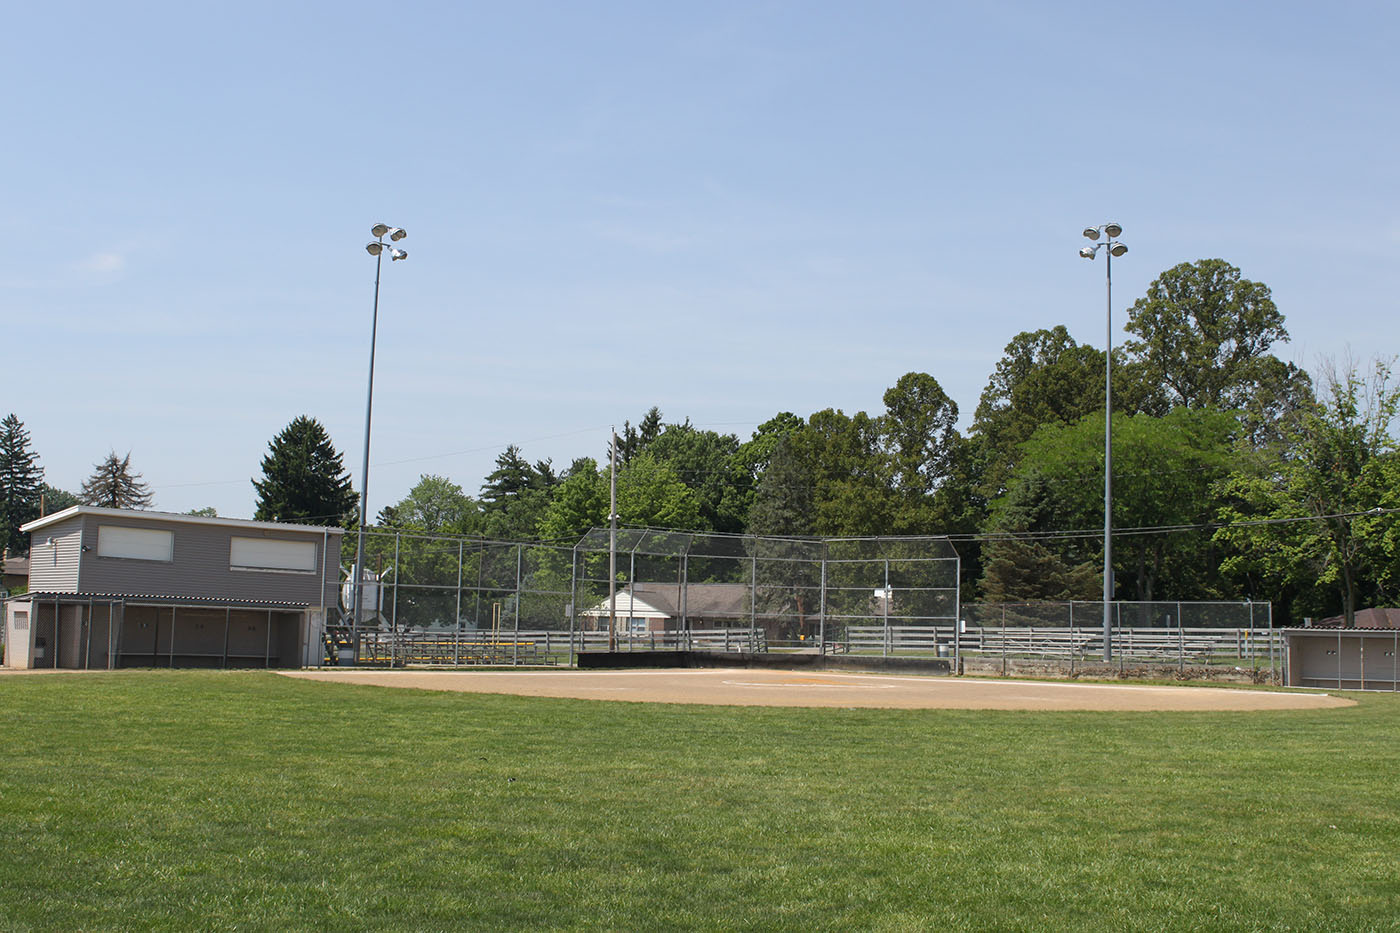 Cambridge City Park BaseBall Field Fence Backstop Strauss Fence New Concord Ohio